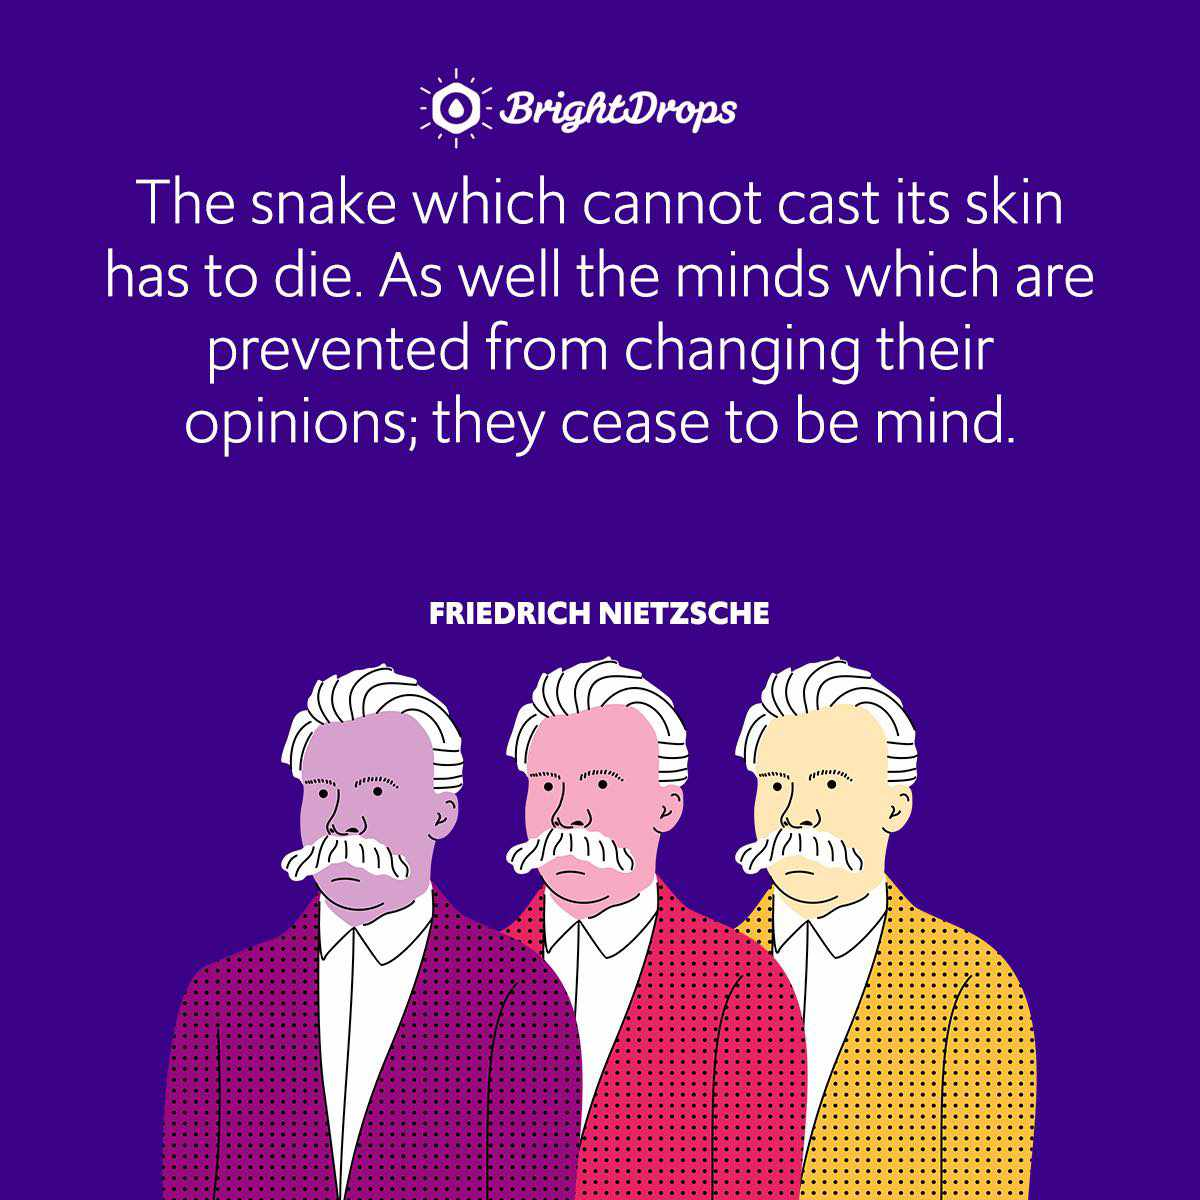 The snake which cannot cast its skin has to die. As well the minds which are prevented from changing their opinions; they cease to be mind.